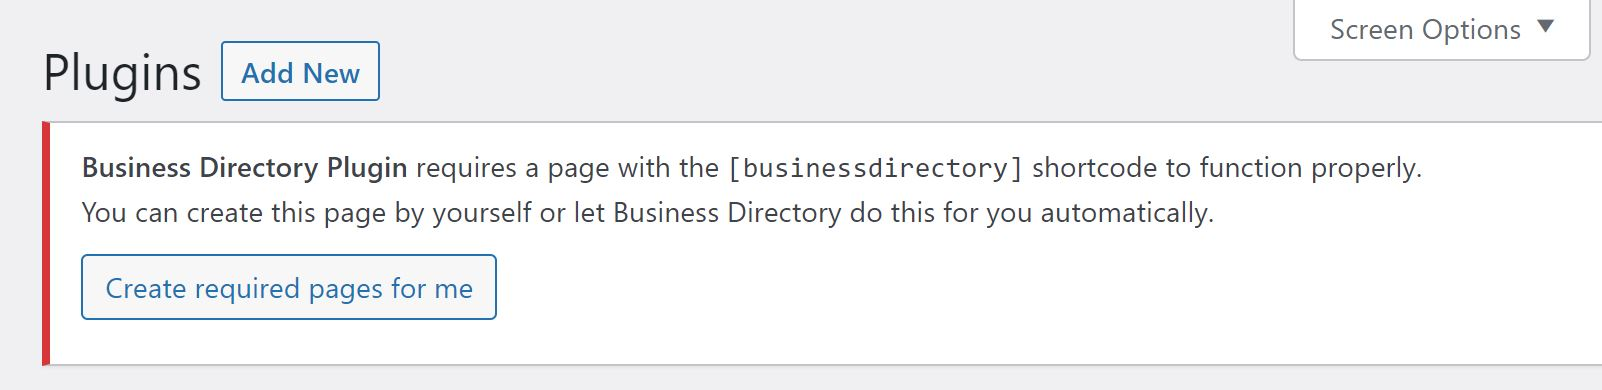 A notification from the free Business Directory Plugin.